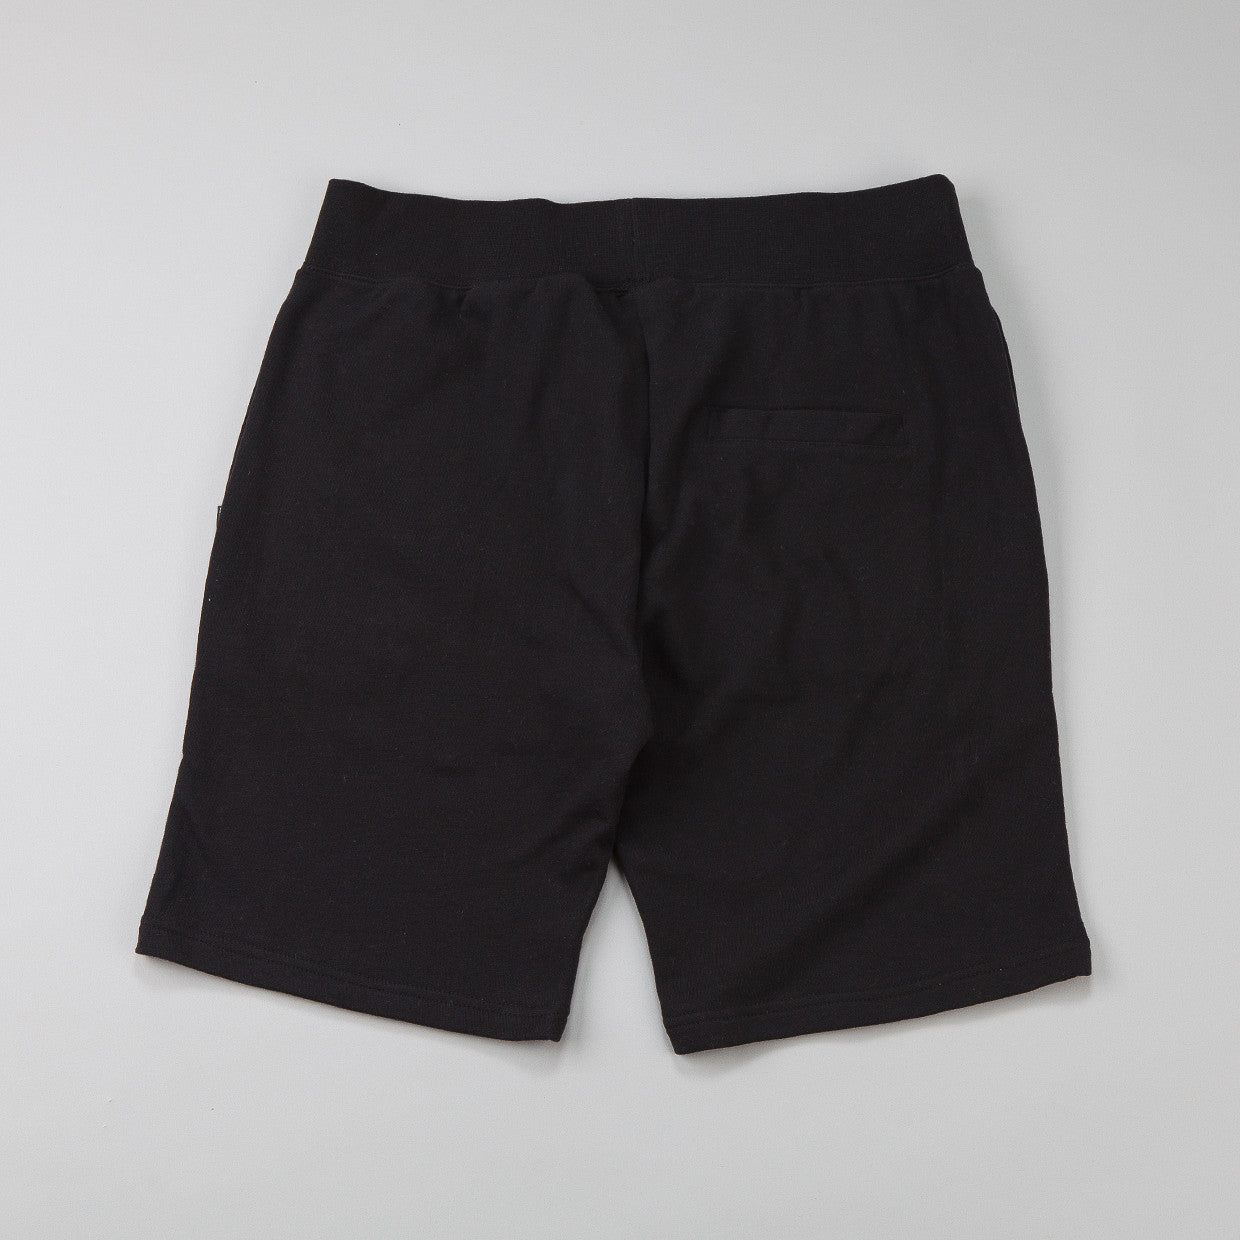 Undefeated All Good Sweatshorts Black